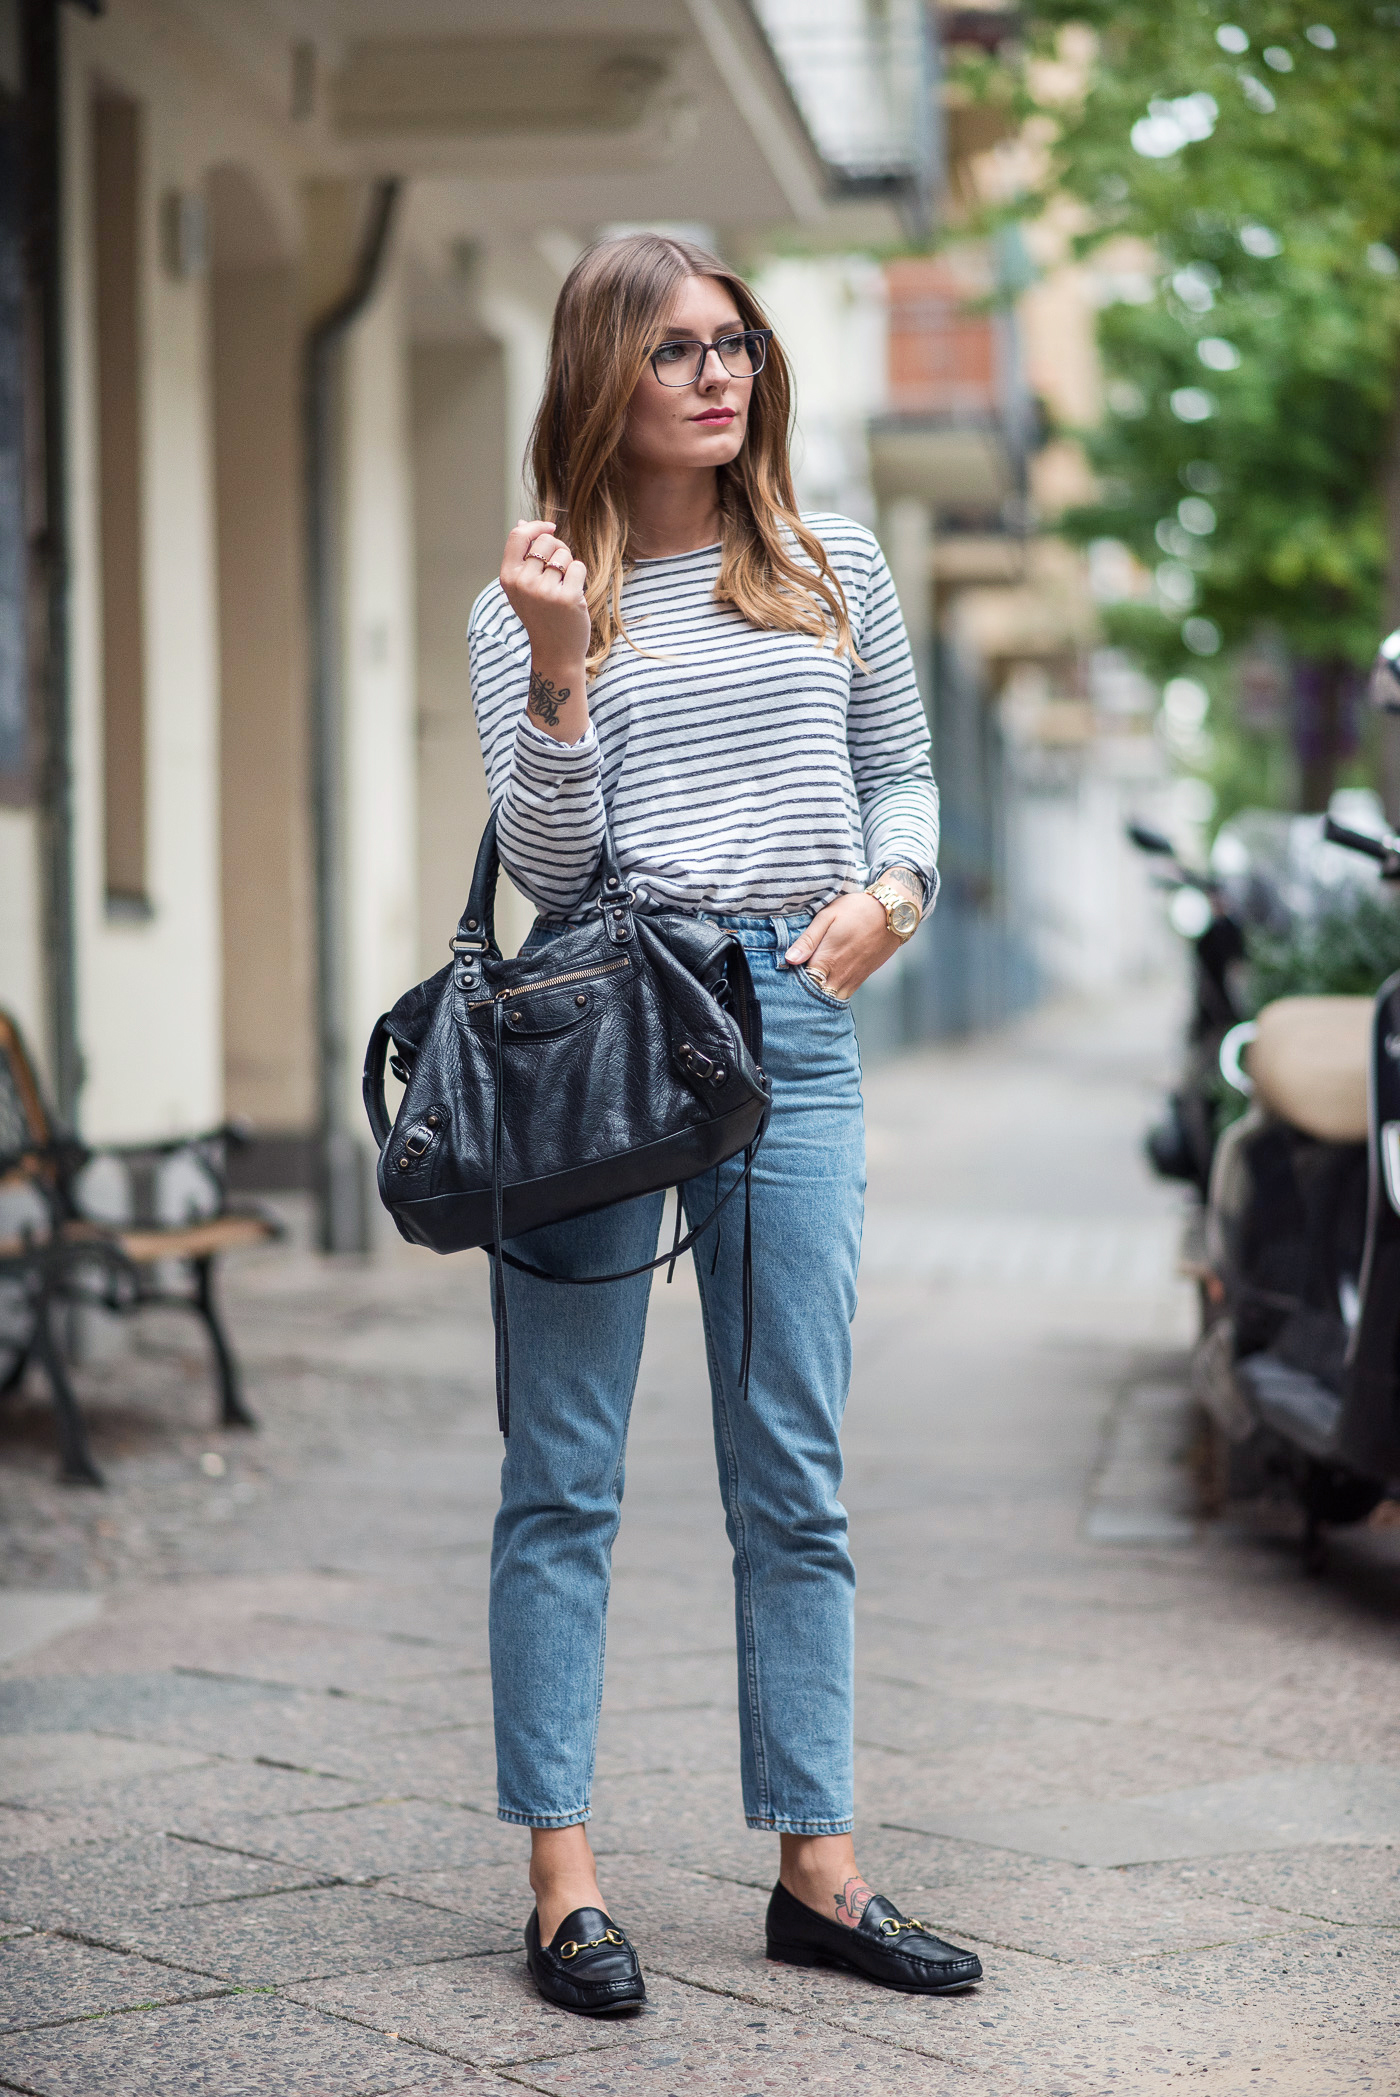 Blogger_for_Mister_Spex_Brille_Outfit_7